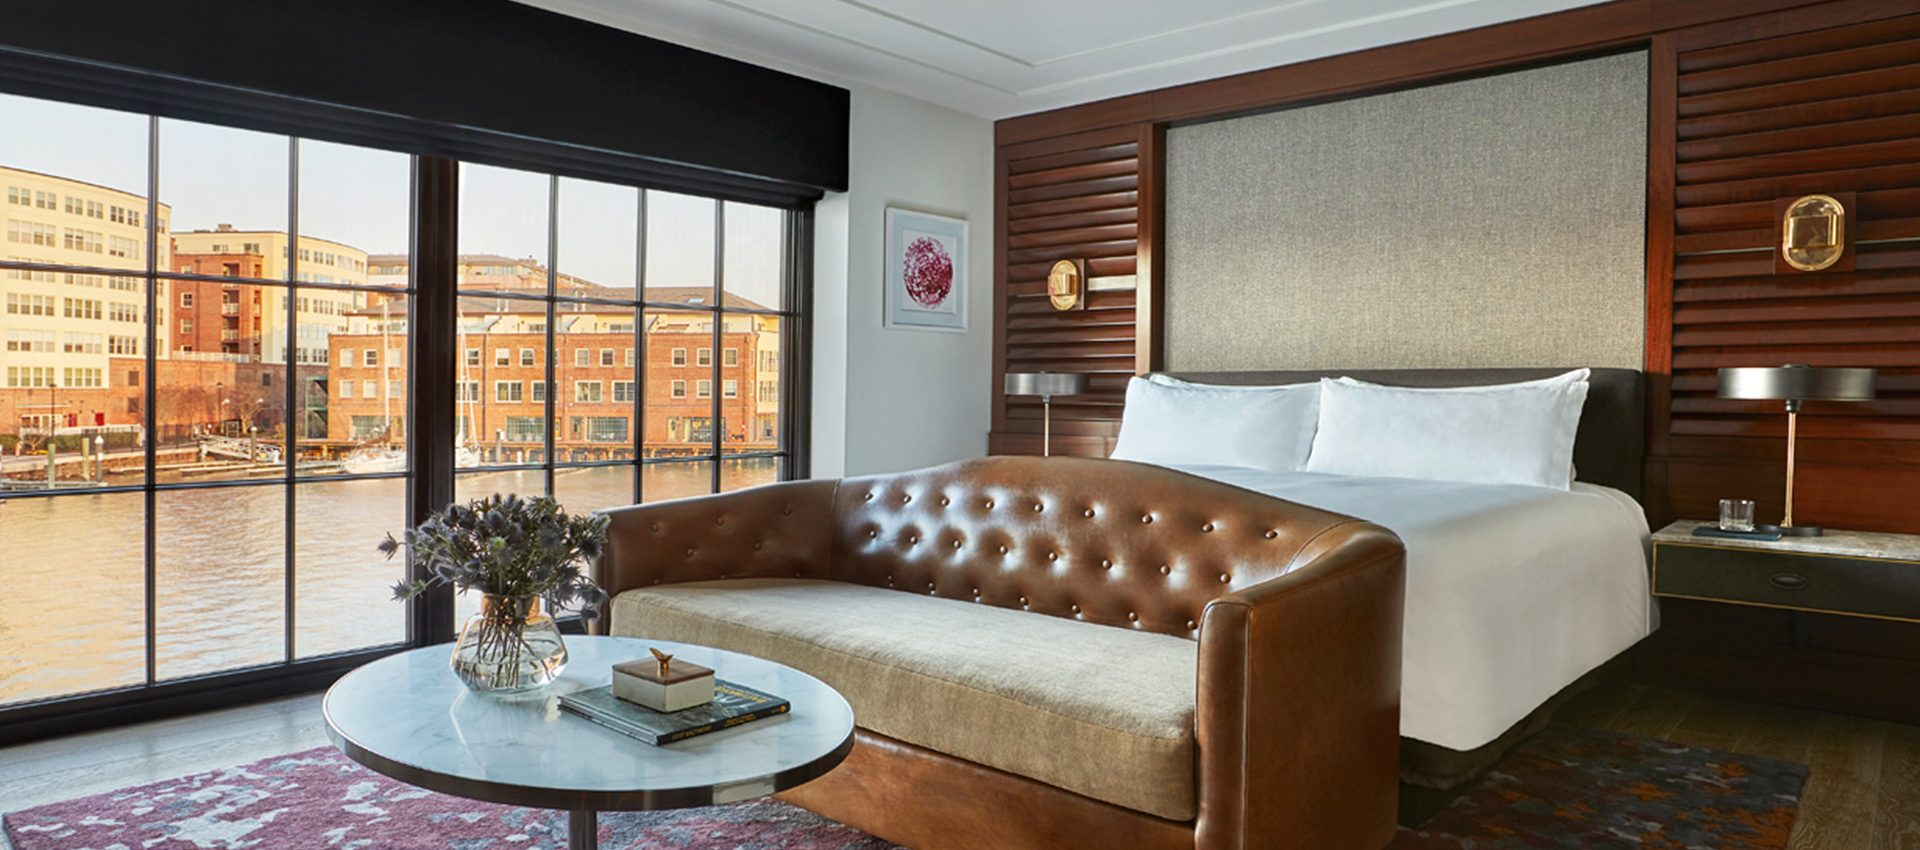 You'll want to do breakfast in bed at The Sagamore Pendry in Fells Point. Each room features incredible harbor-side views. (Image: Courtesy The Sagamore Pendry Baltimore)